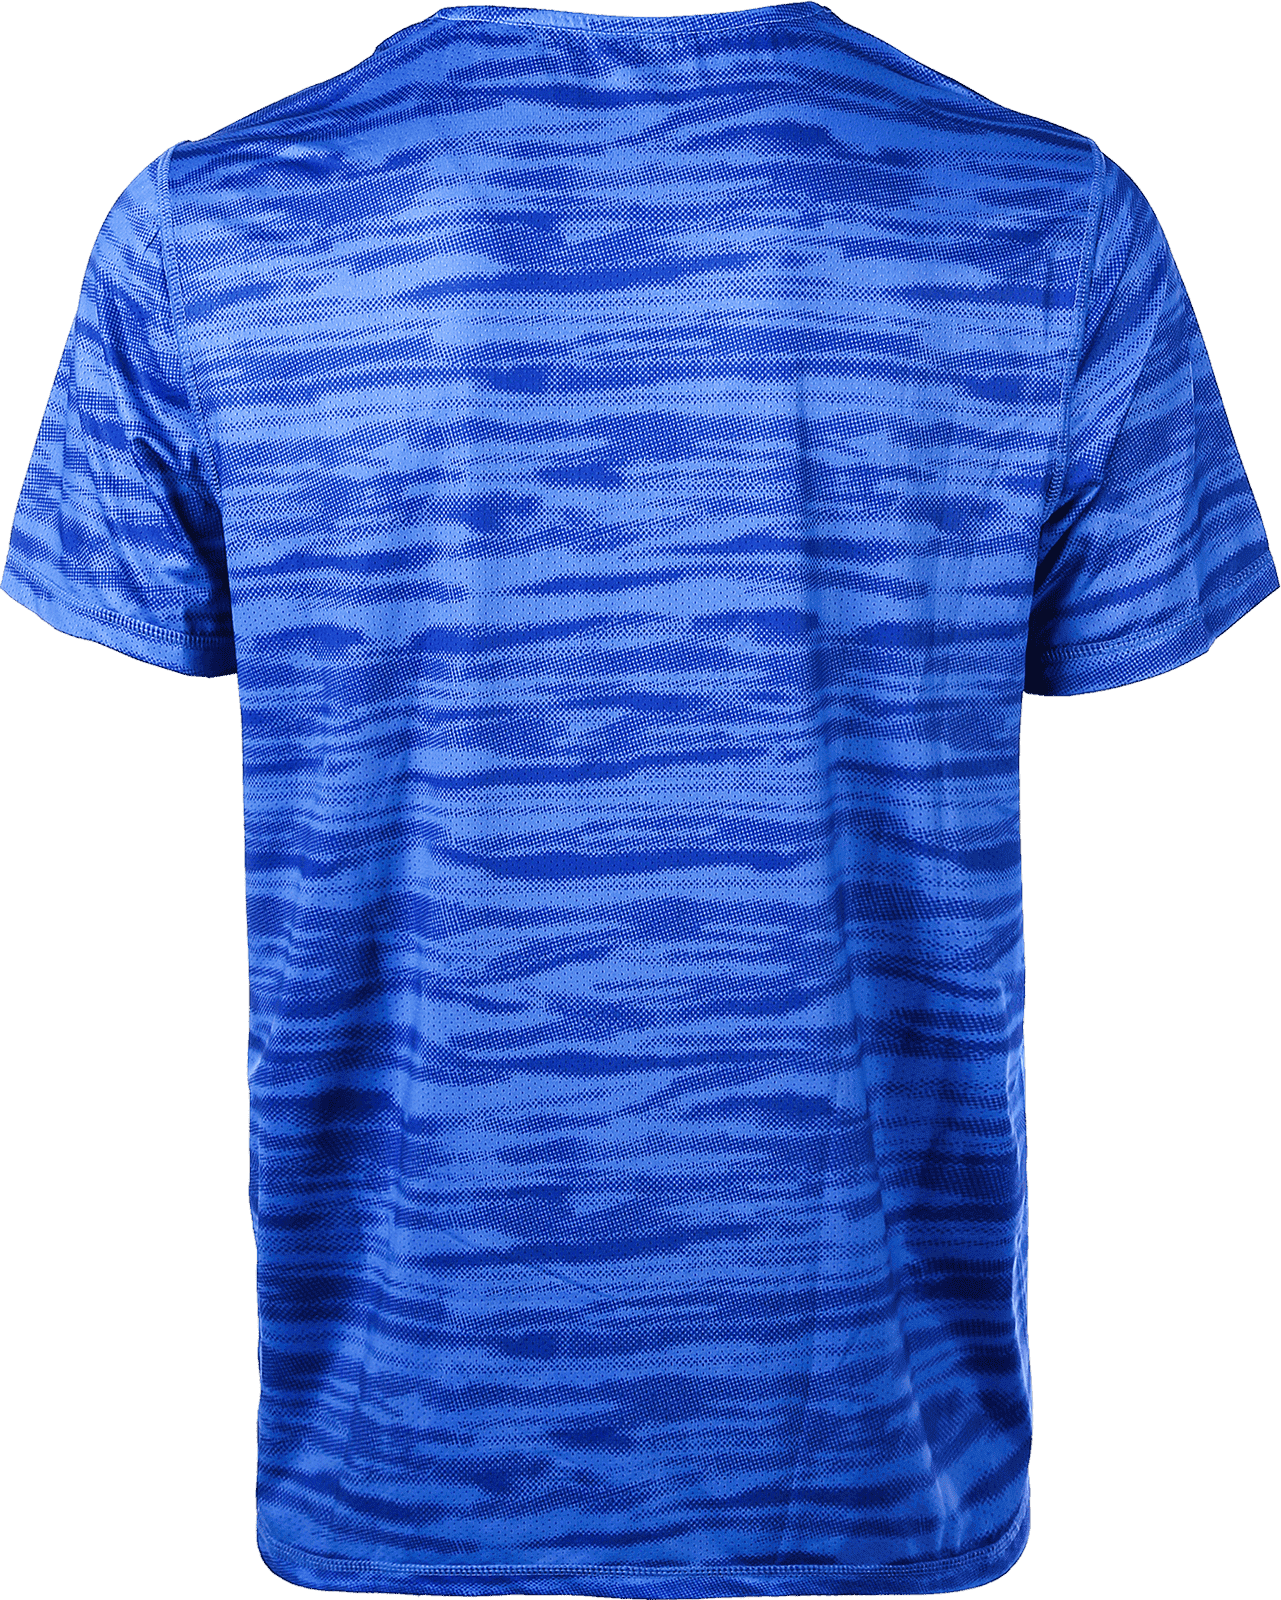 Forza Malone Jr. S/S Tee, 2081 Blue Aster